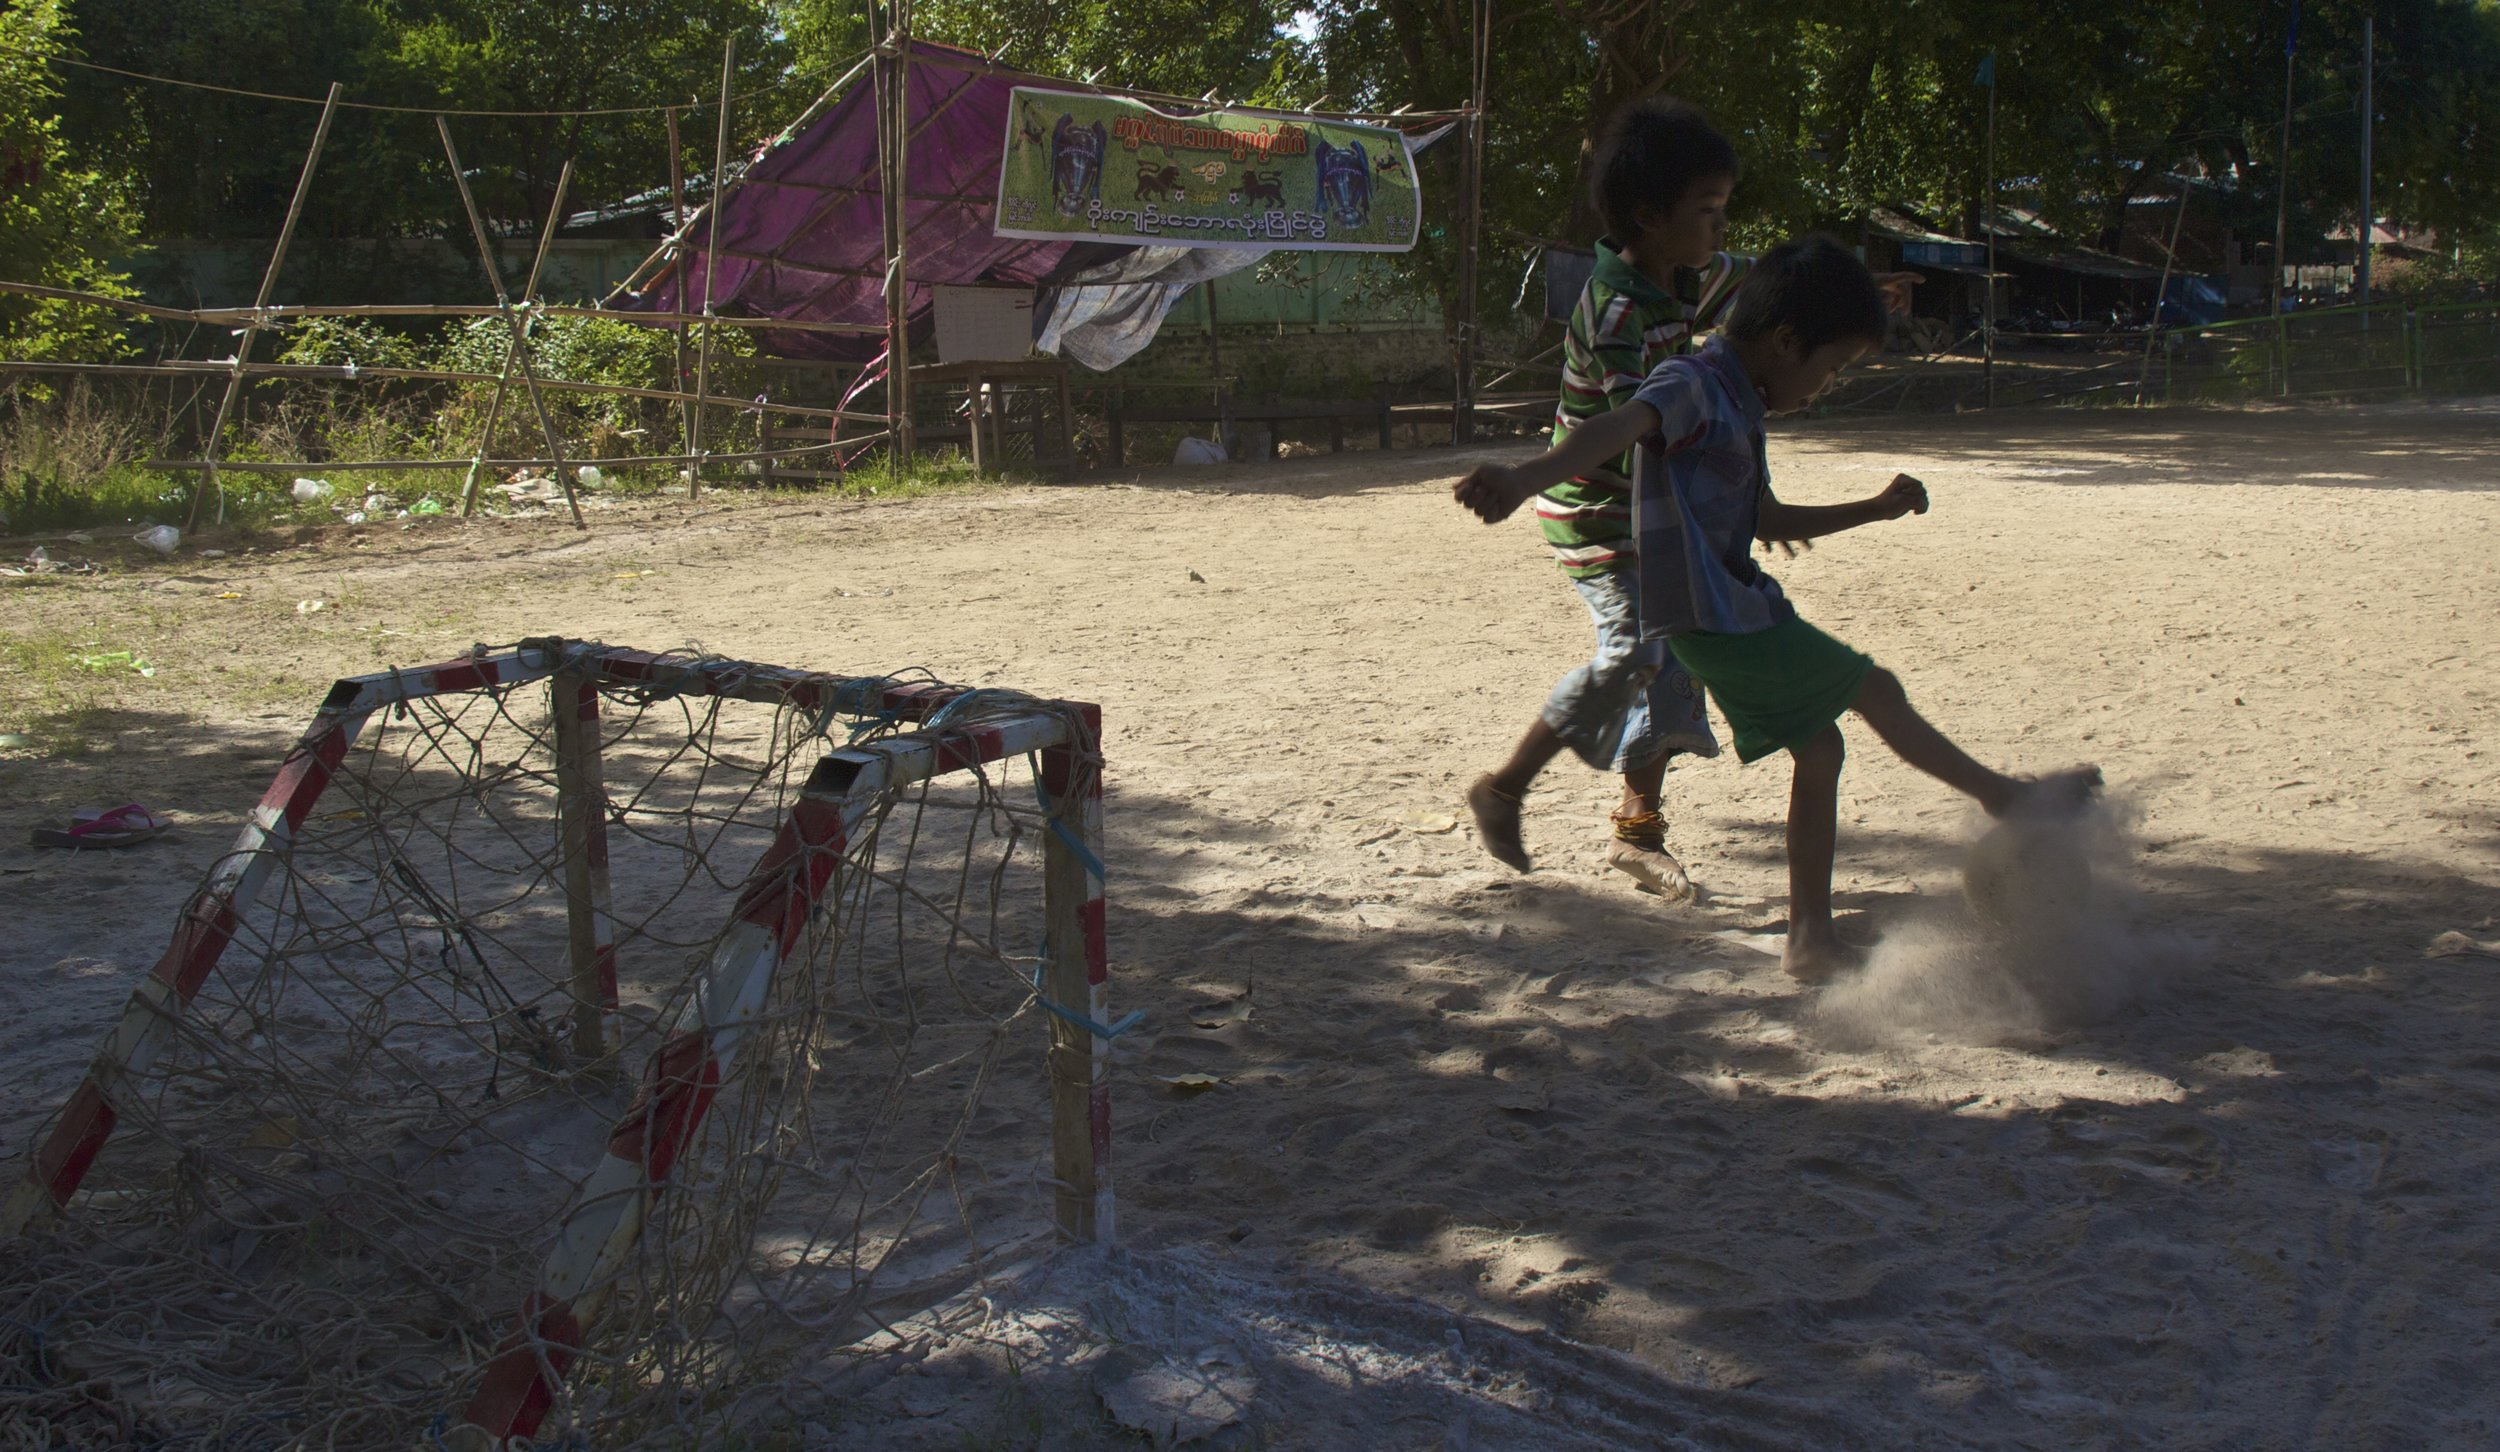 bagan burma myanmar burmese children soccer football 2.jpg